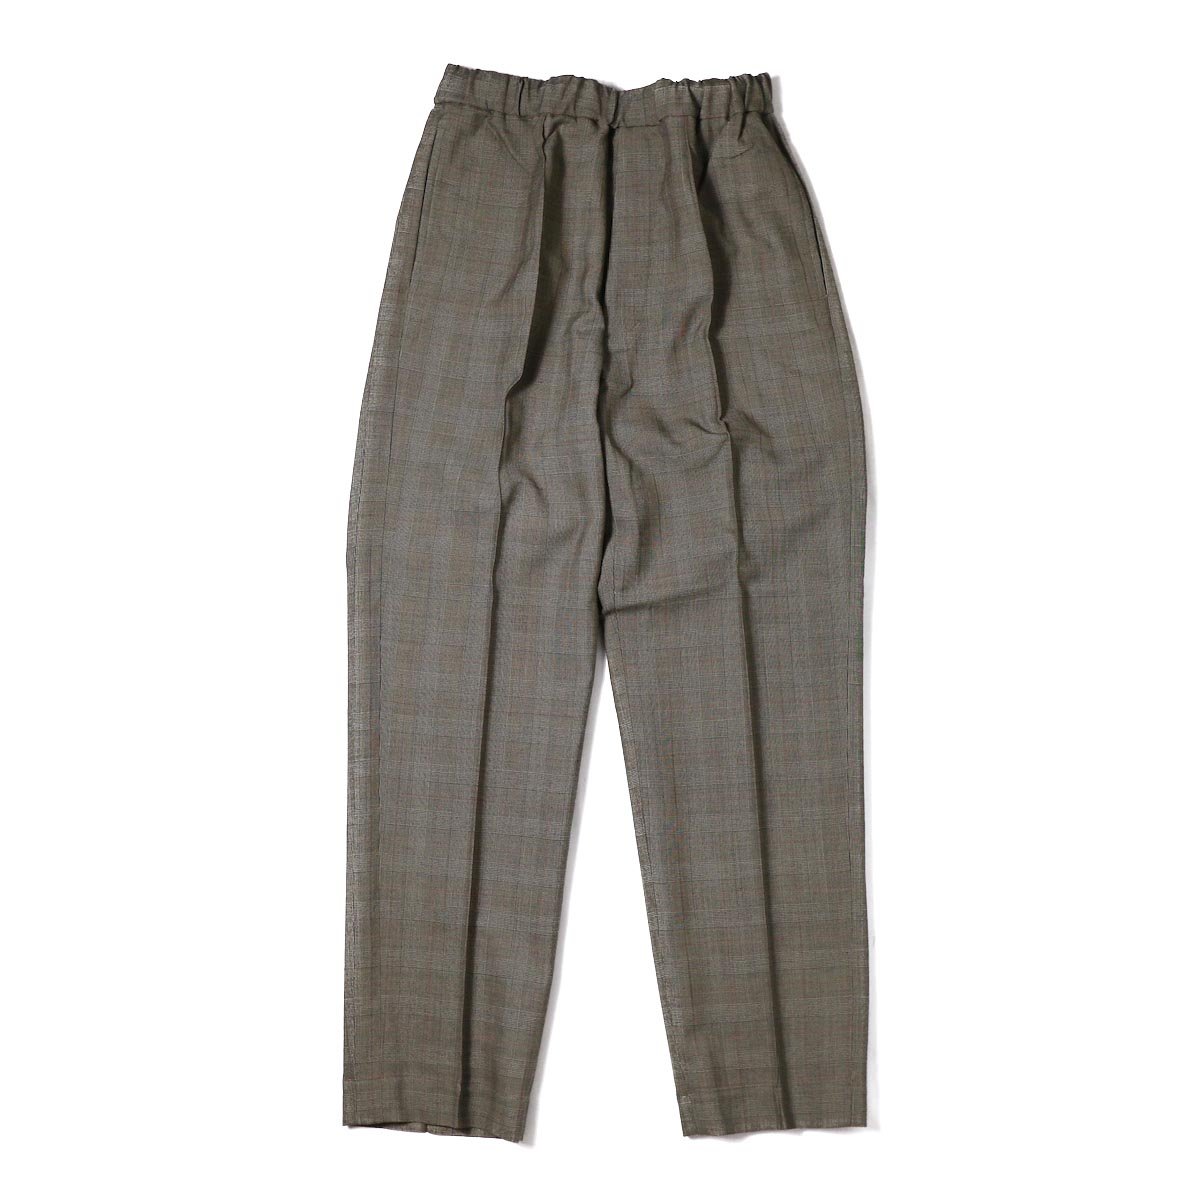 Kaptain Sunshine / Crease Tucked Easy Pants -Brown Glen Plaid